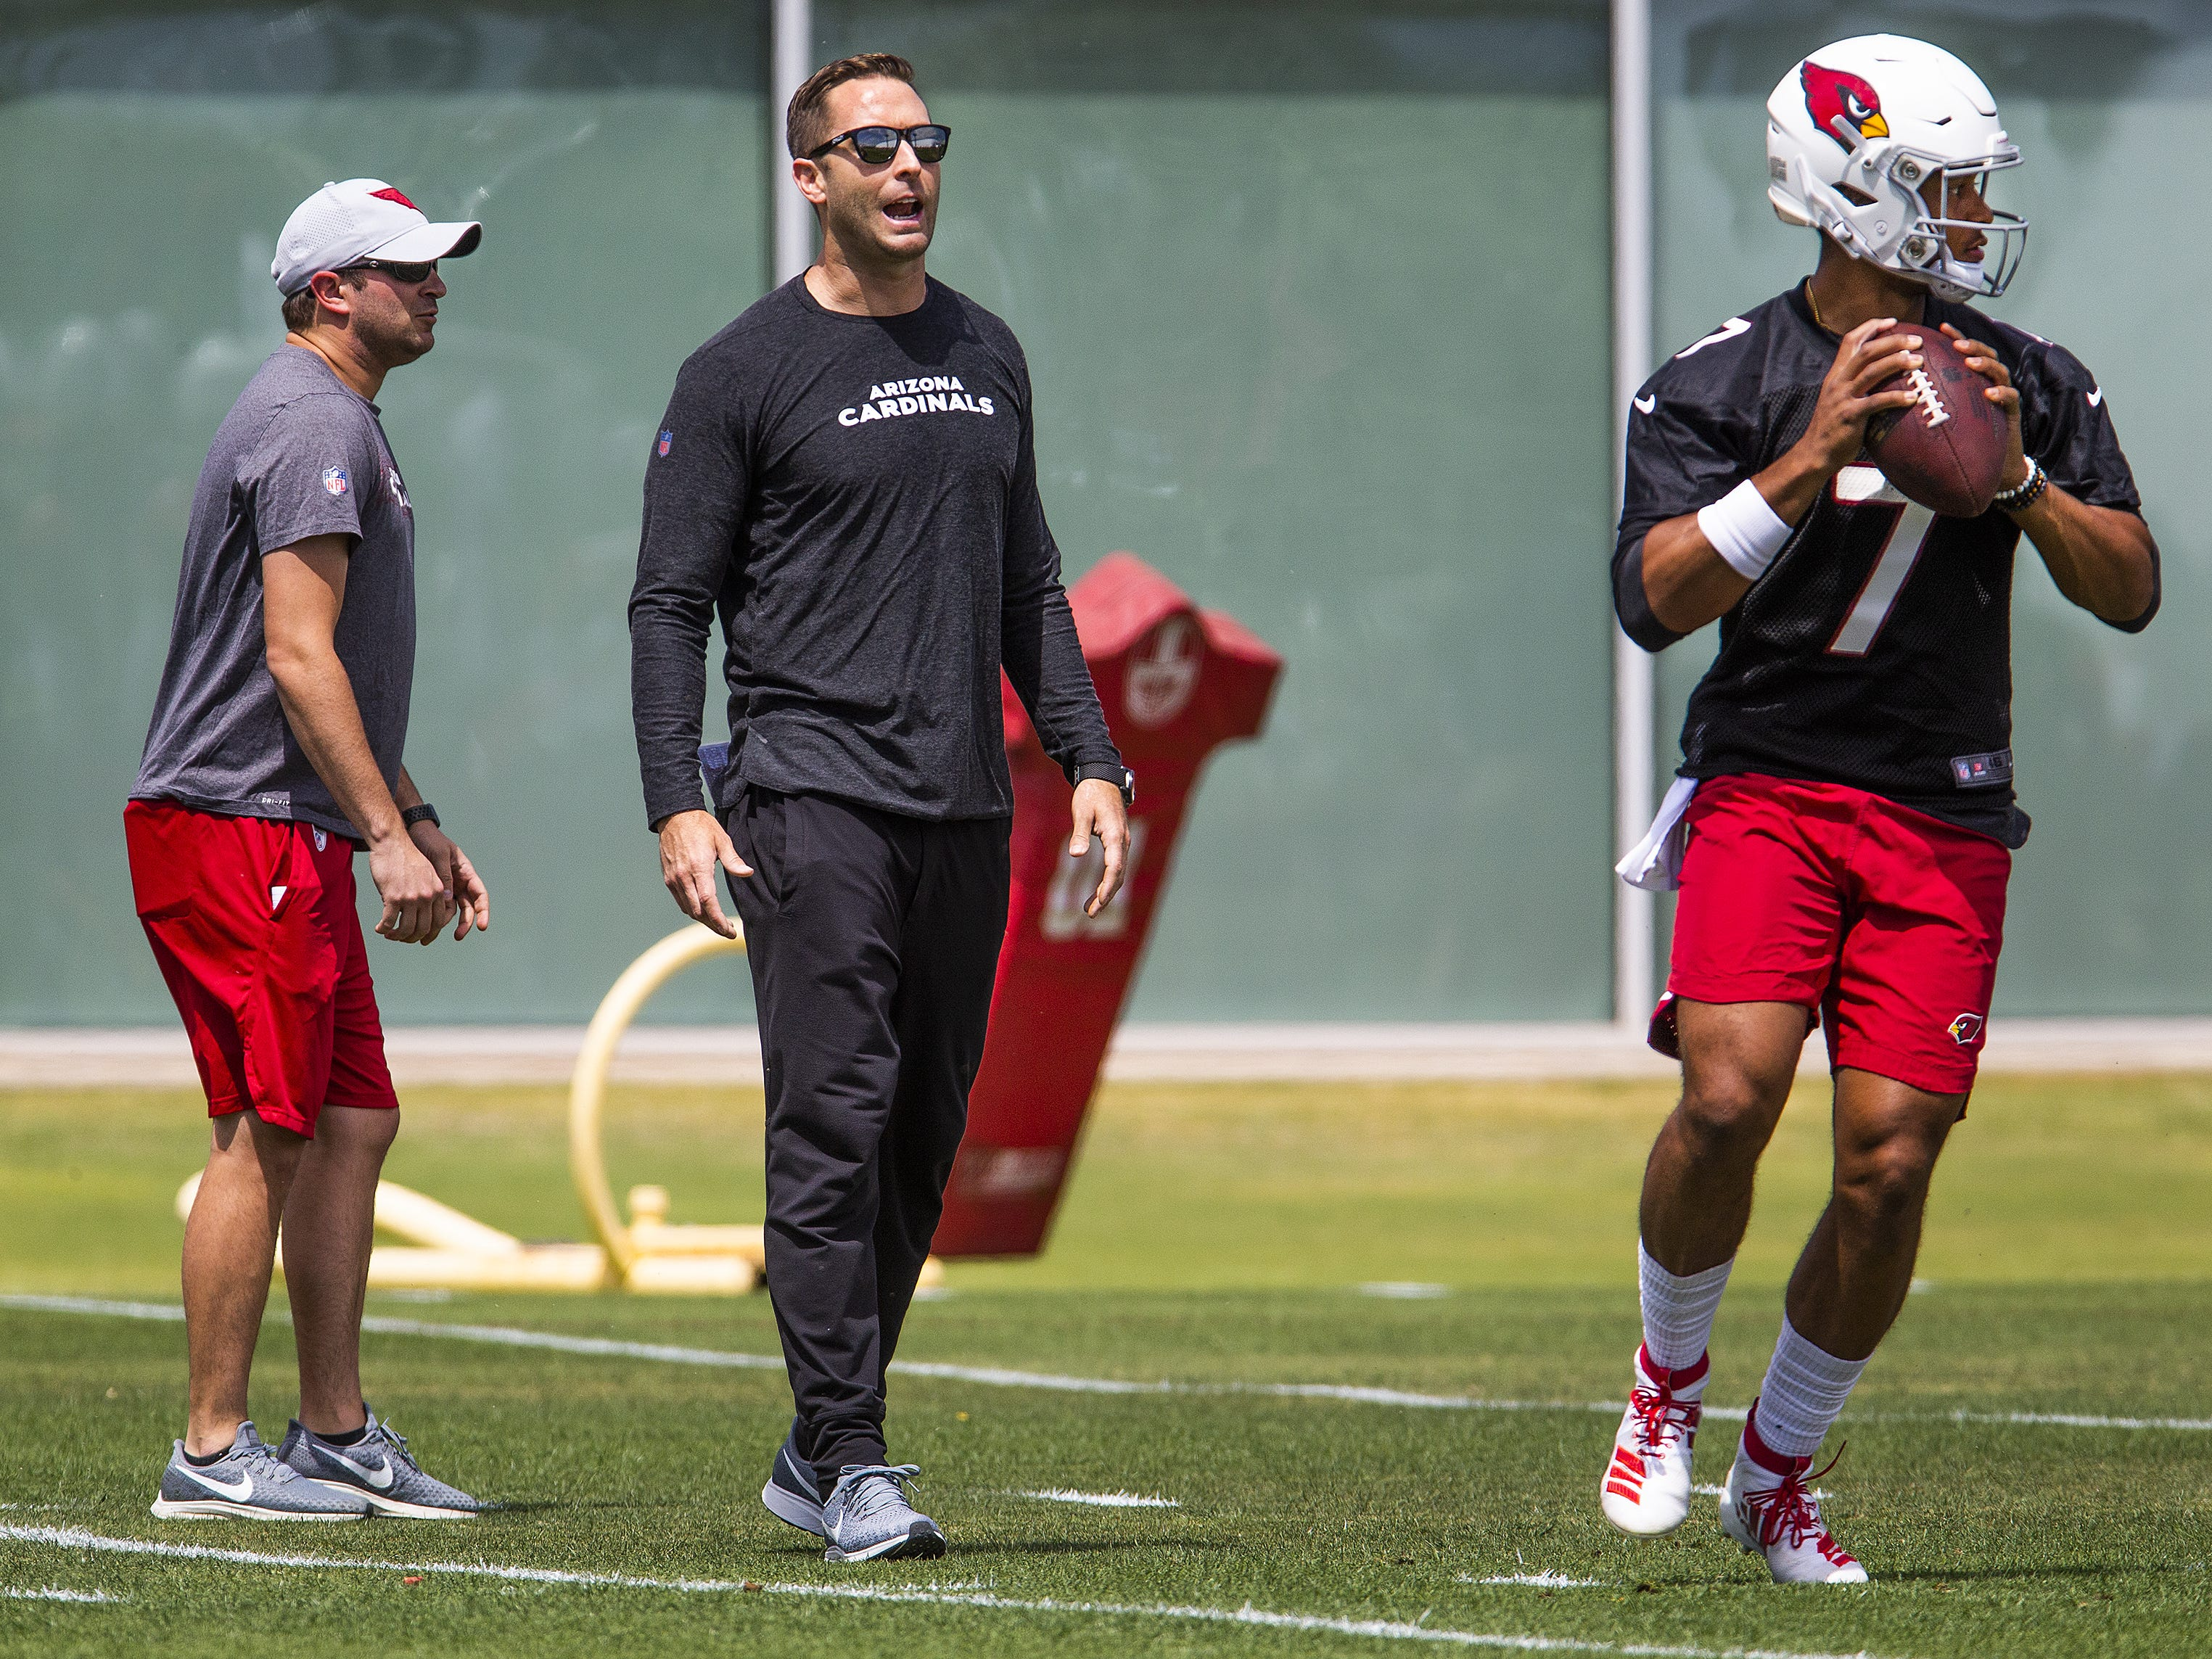 Arizona Cardinals head coach Kliff Kingsbury watches the practice of quarterback Brett Hundley, Tuesday, April 23, 2019. Hundley, a former Chandler High School standout, was signed this offseason by the Cardinals.